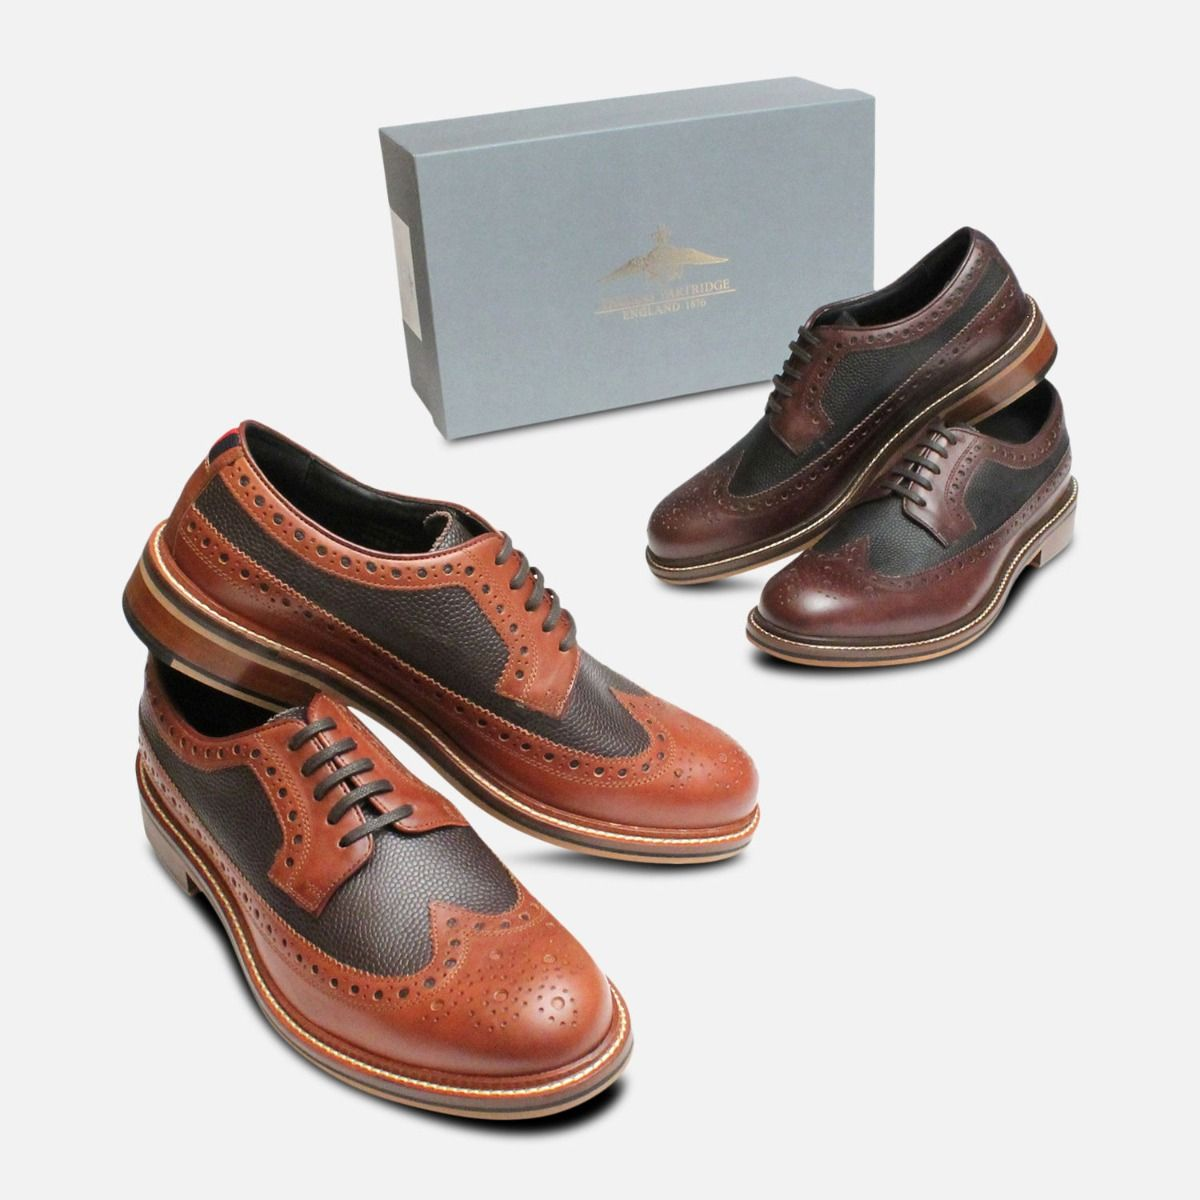 cheap for sale cheap sale quite nice Tan Wingtip Two Tone Brogues by Thomas Partridge